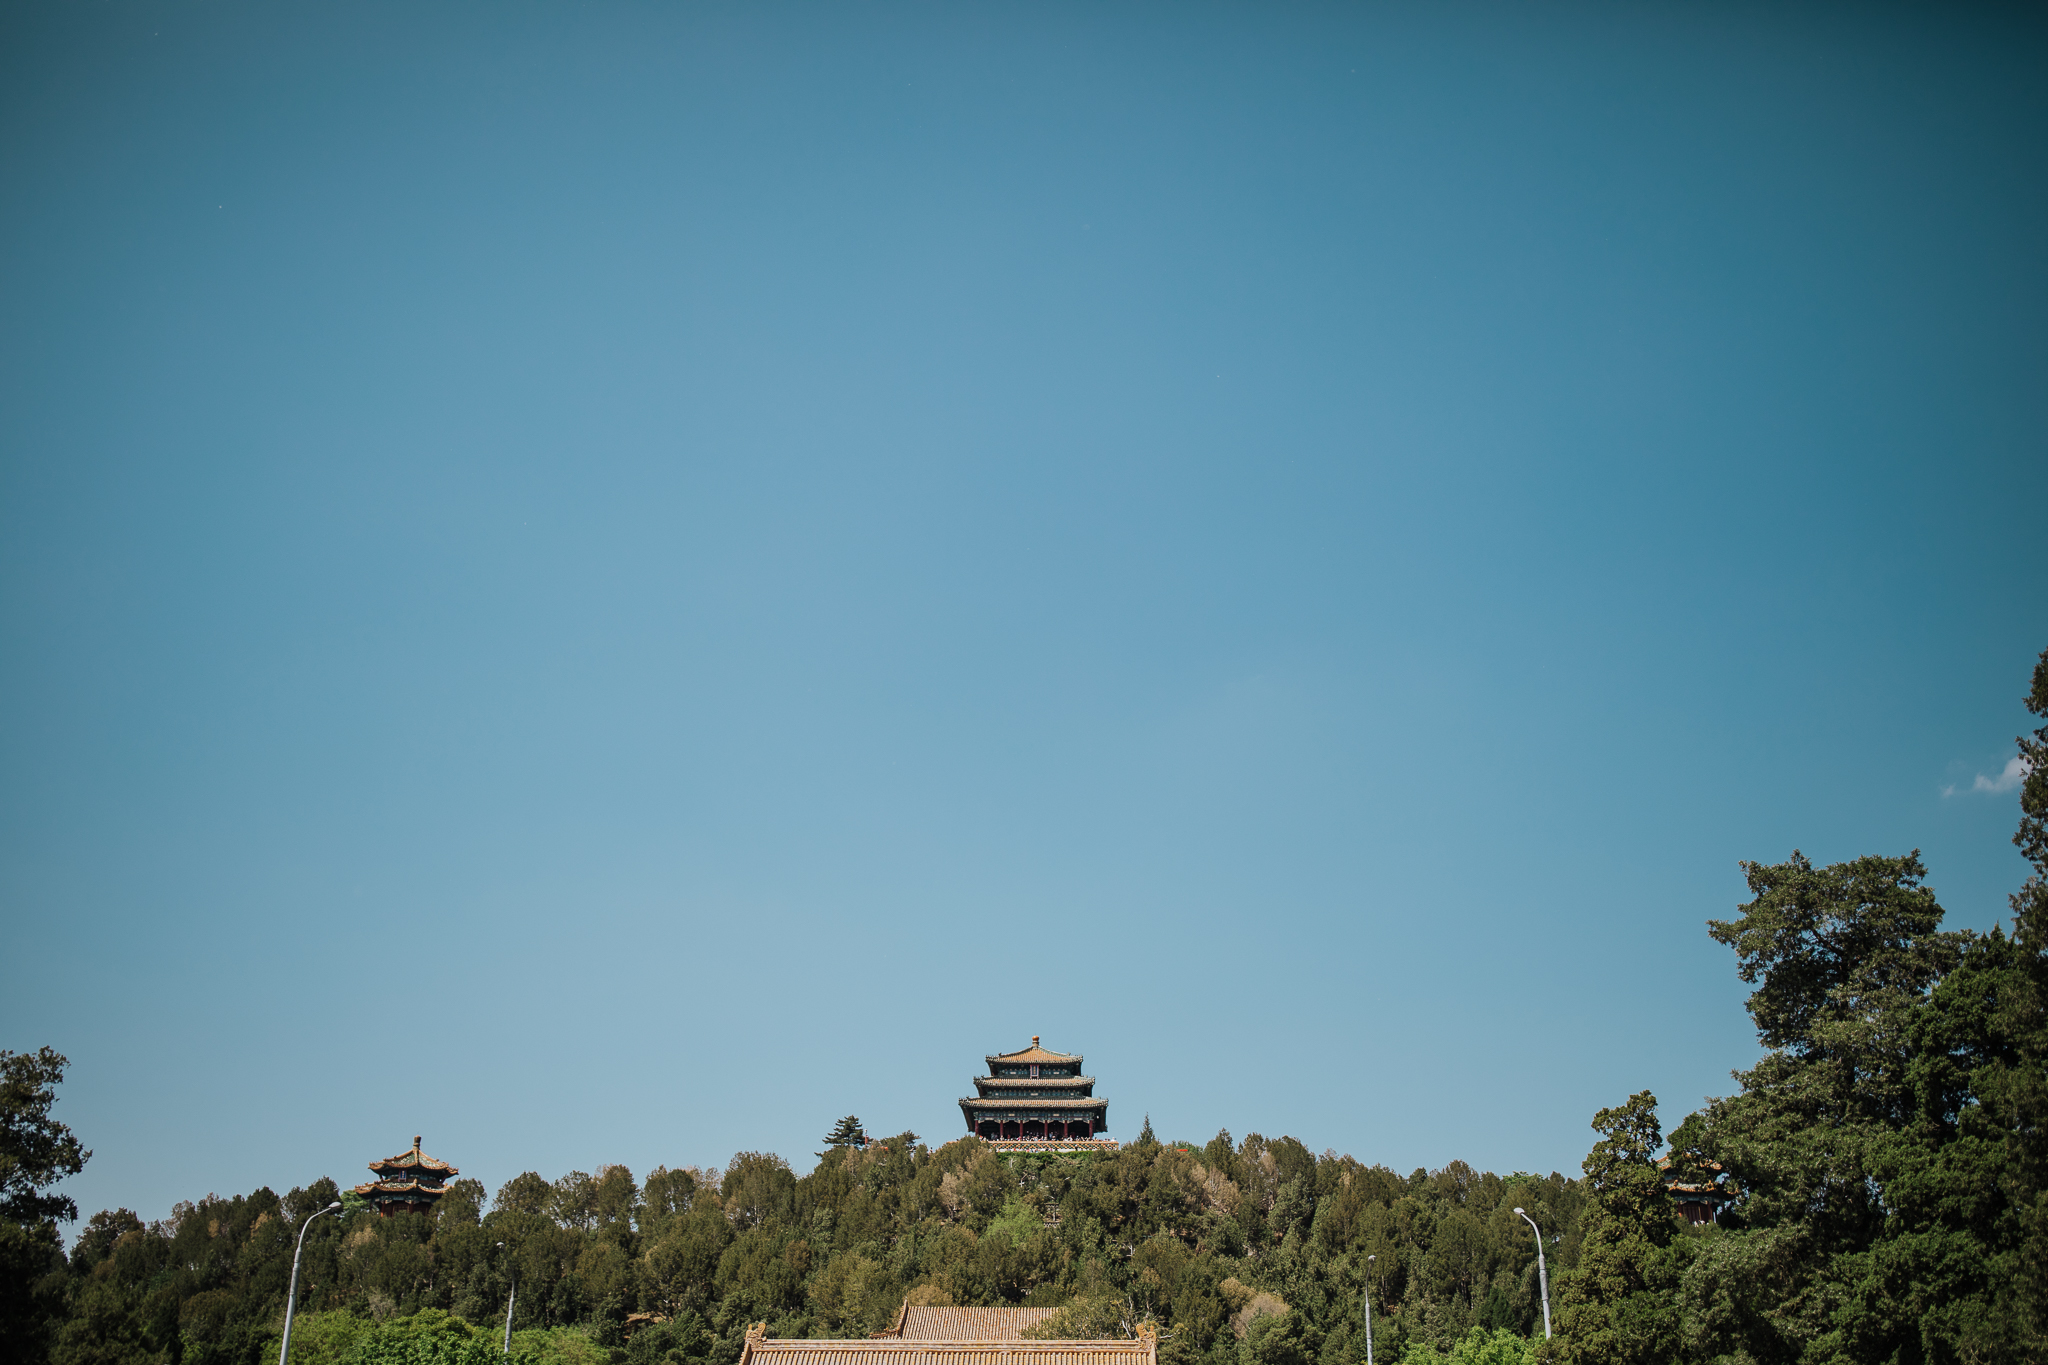 Mutianyu, Great Wall of China,  Beijing, Forbidden City, Emperors Summer Palace (30 of 51).jpg